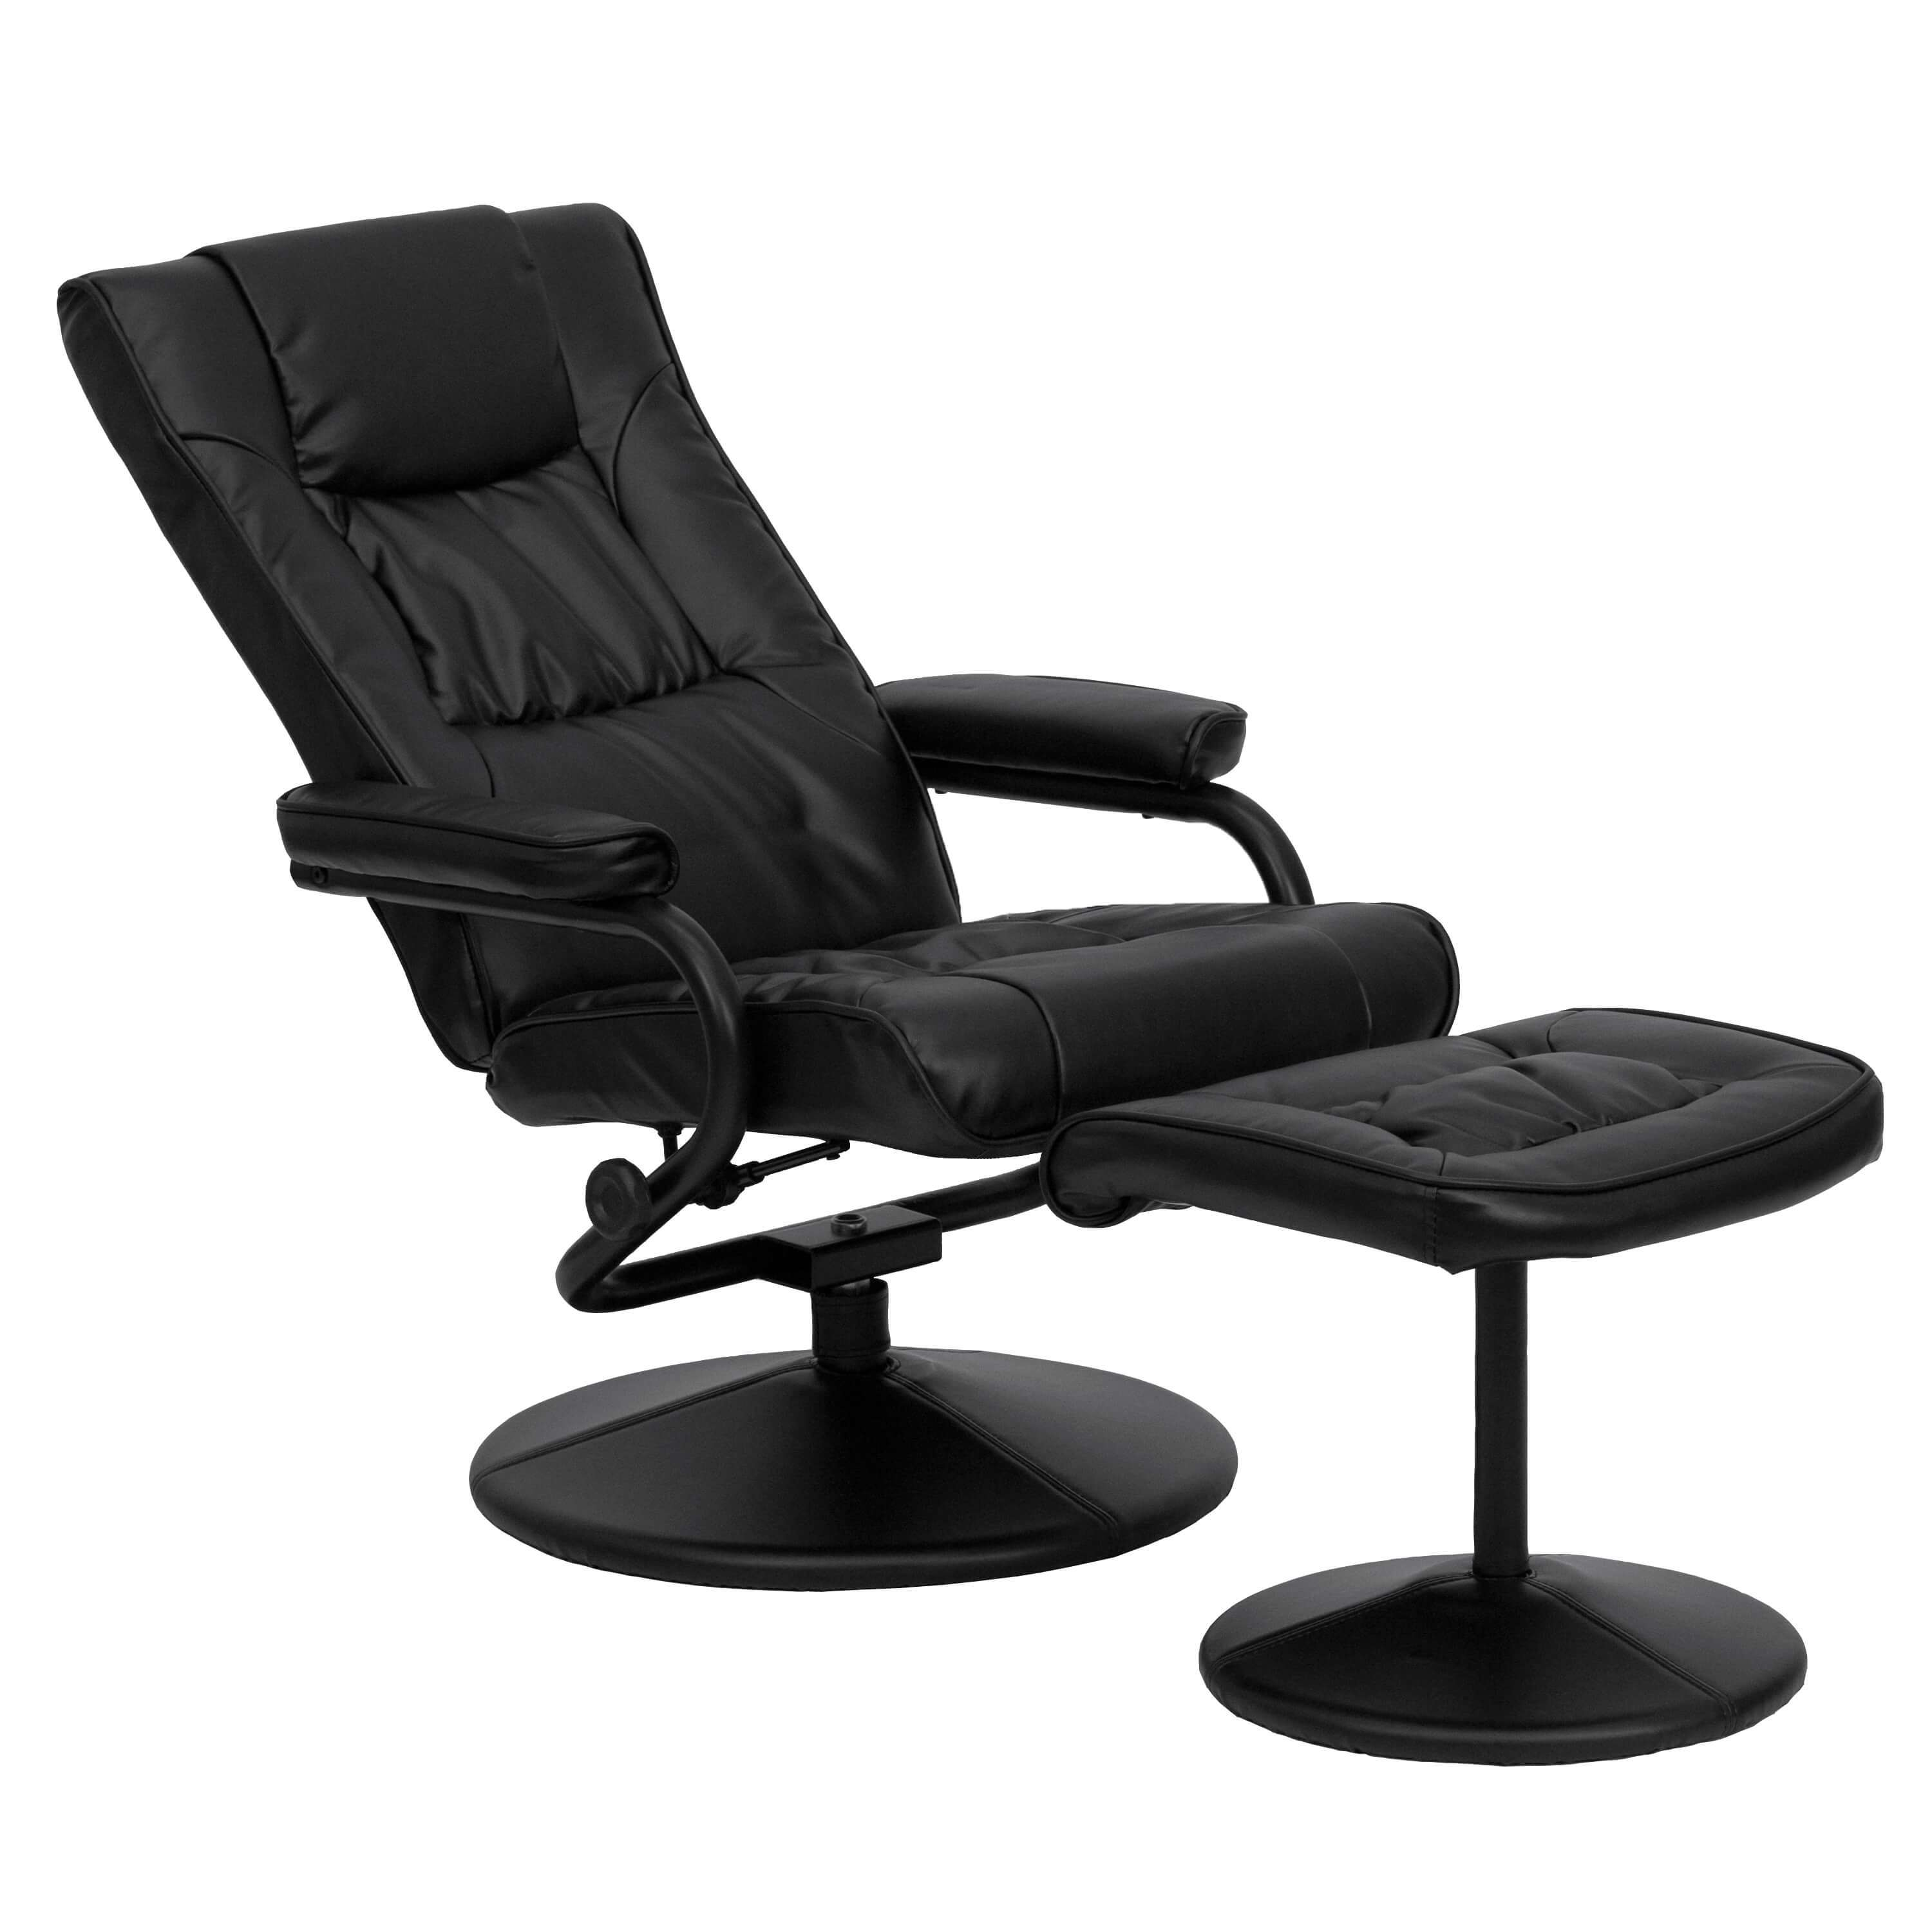 Contemporary recliner with ottoman reclined view